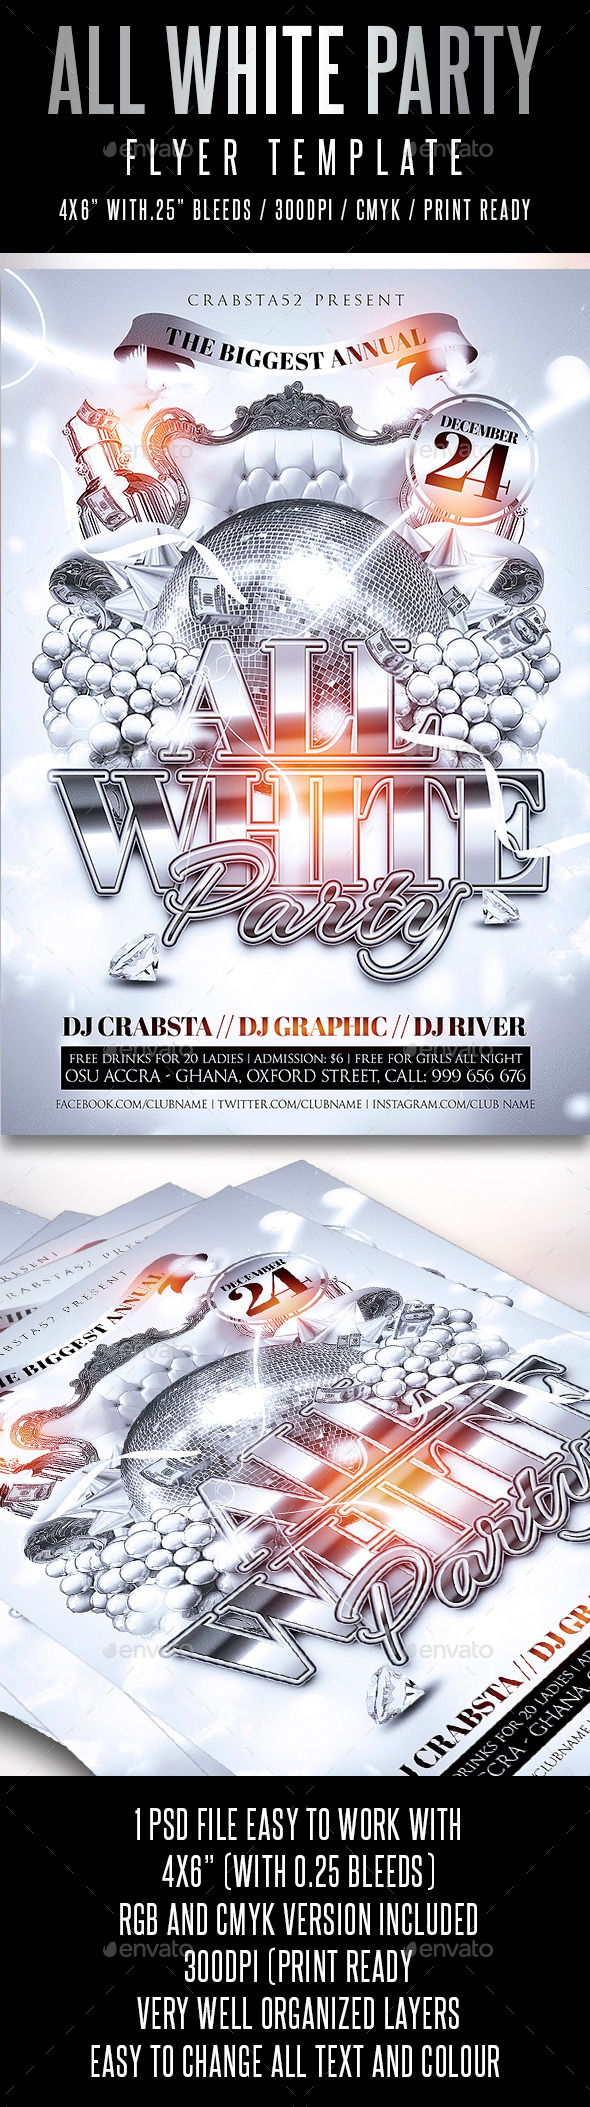 All White Party Flyer Template - Flyers Print Templates